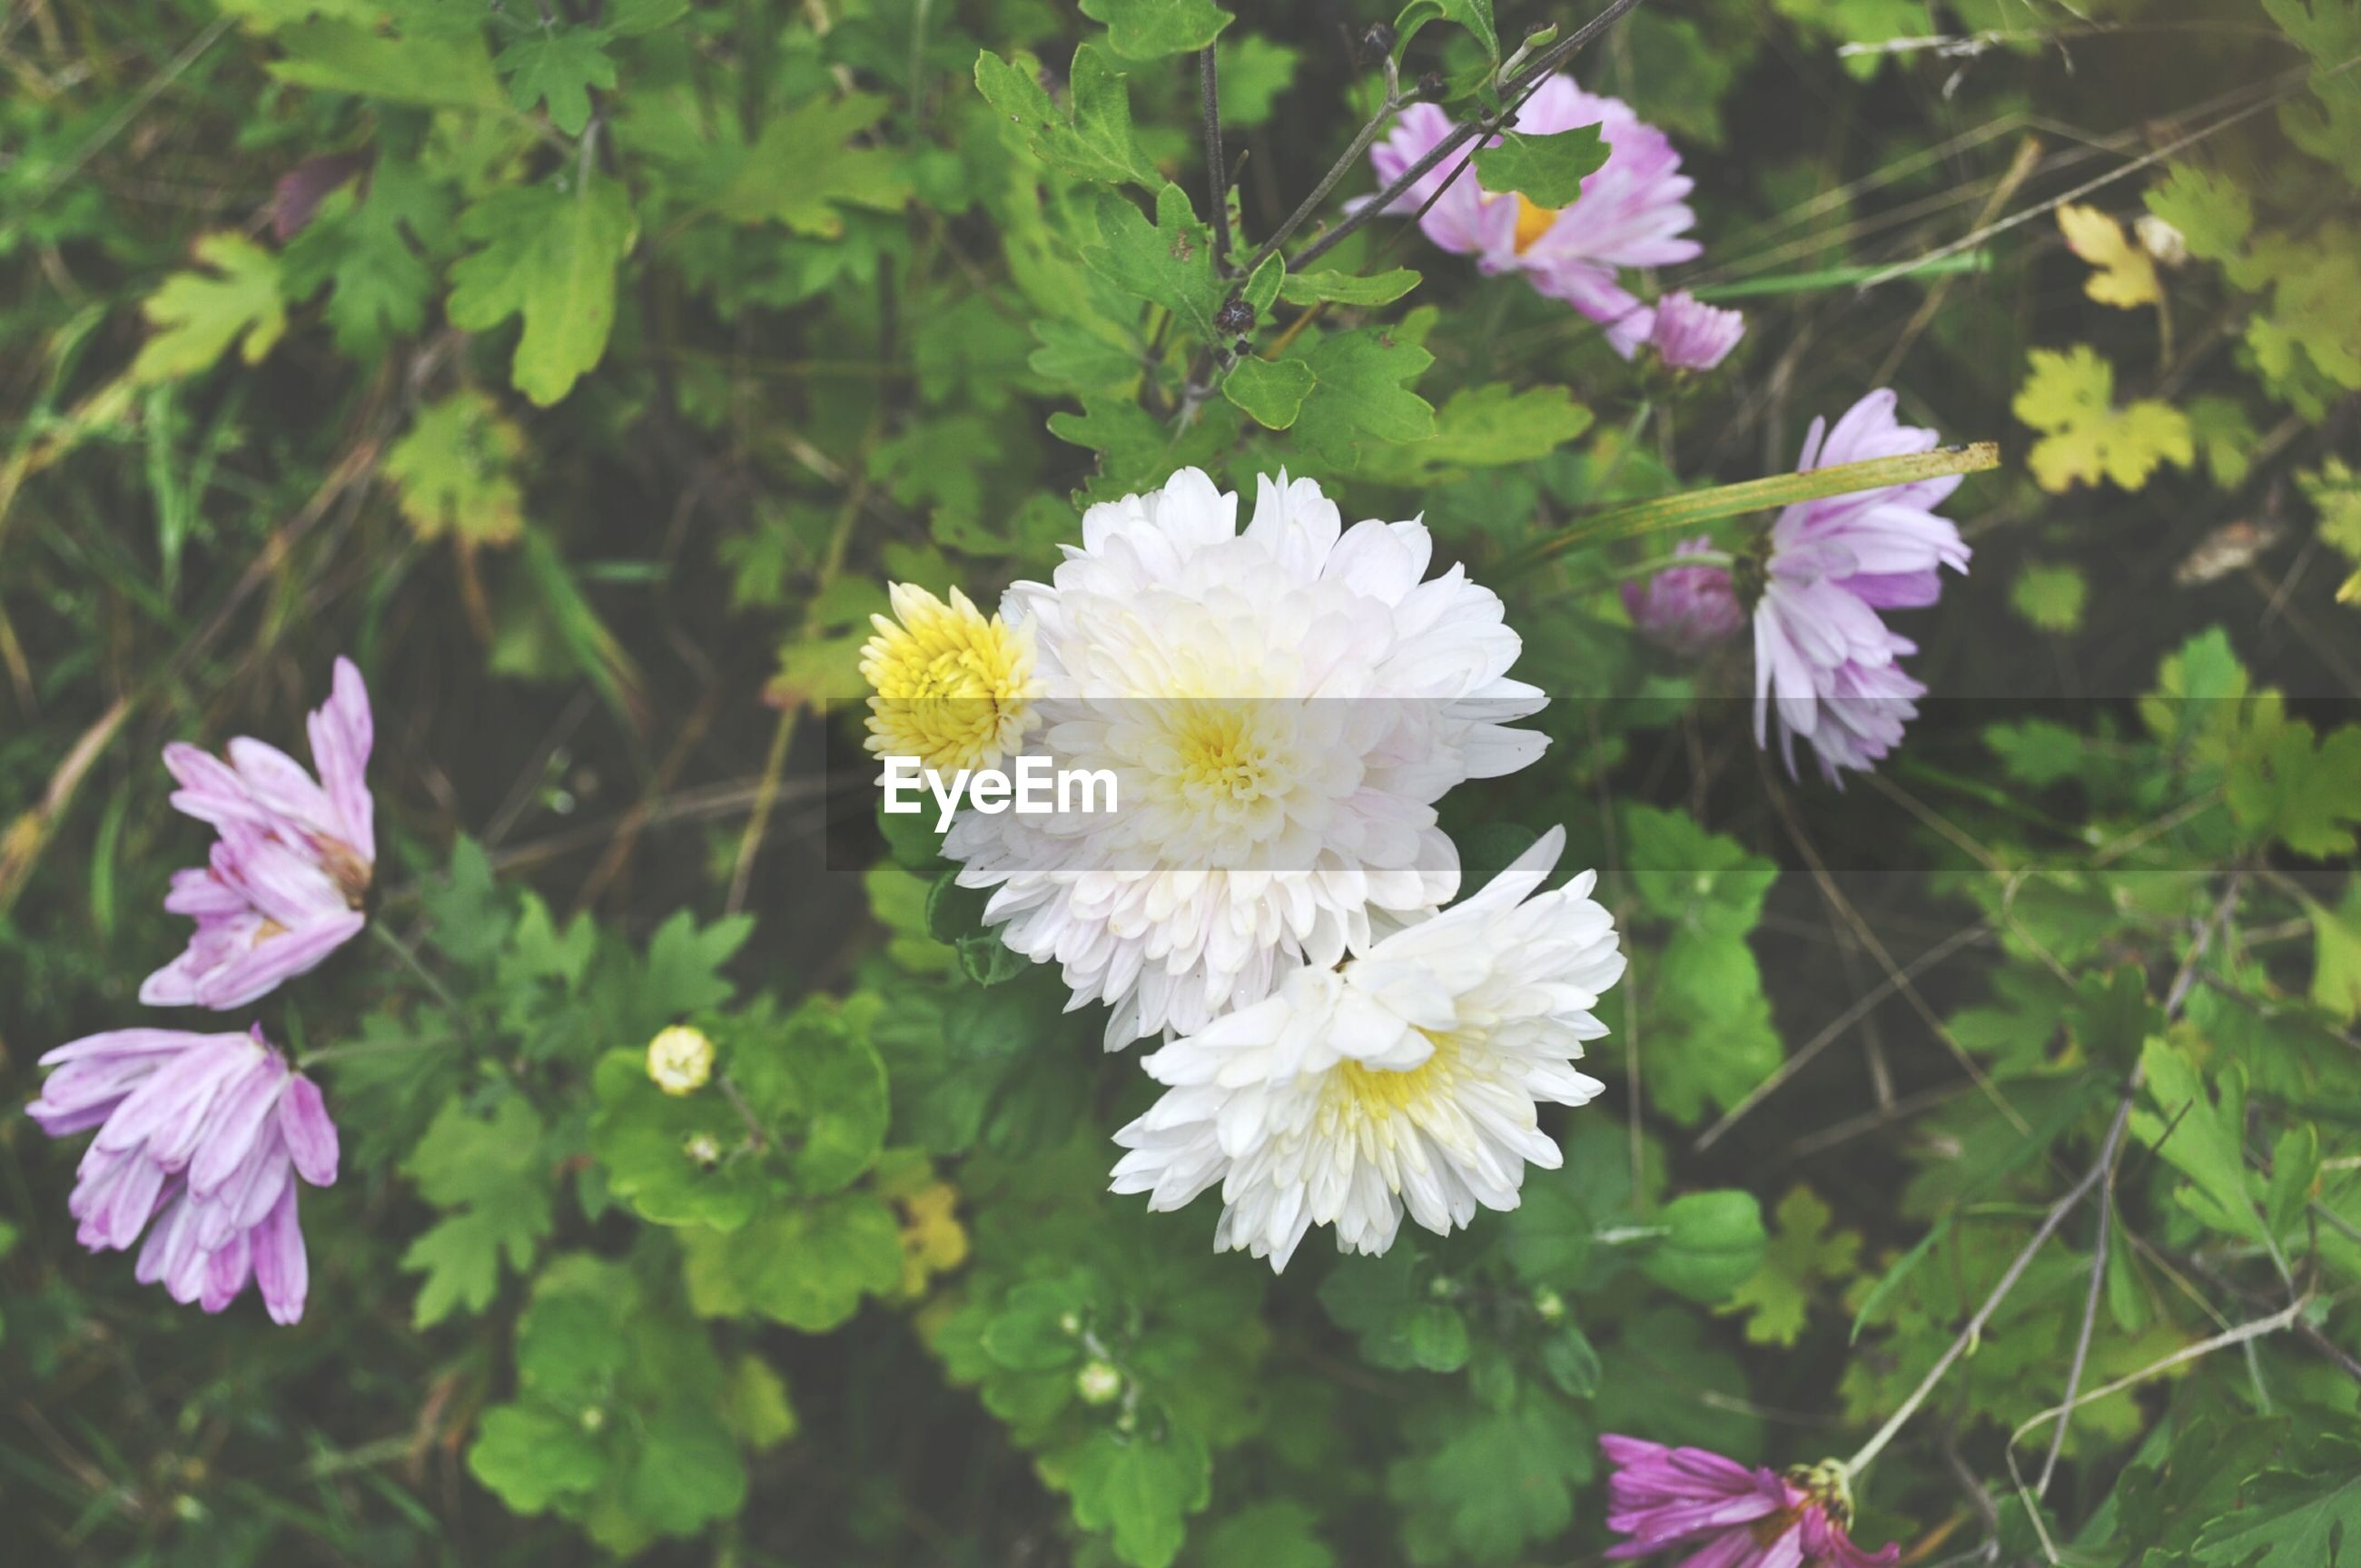 flower, freshness, fragility, petal, growth, flower head, beauty in nature, blooming, plant, nature, leaf, focus on foreground, close-up, pink color, in bloom, park - man made space, day, green color, outdoors, blossom